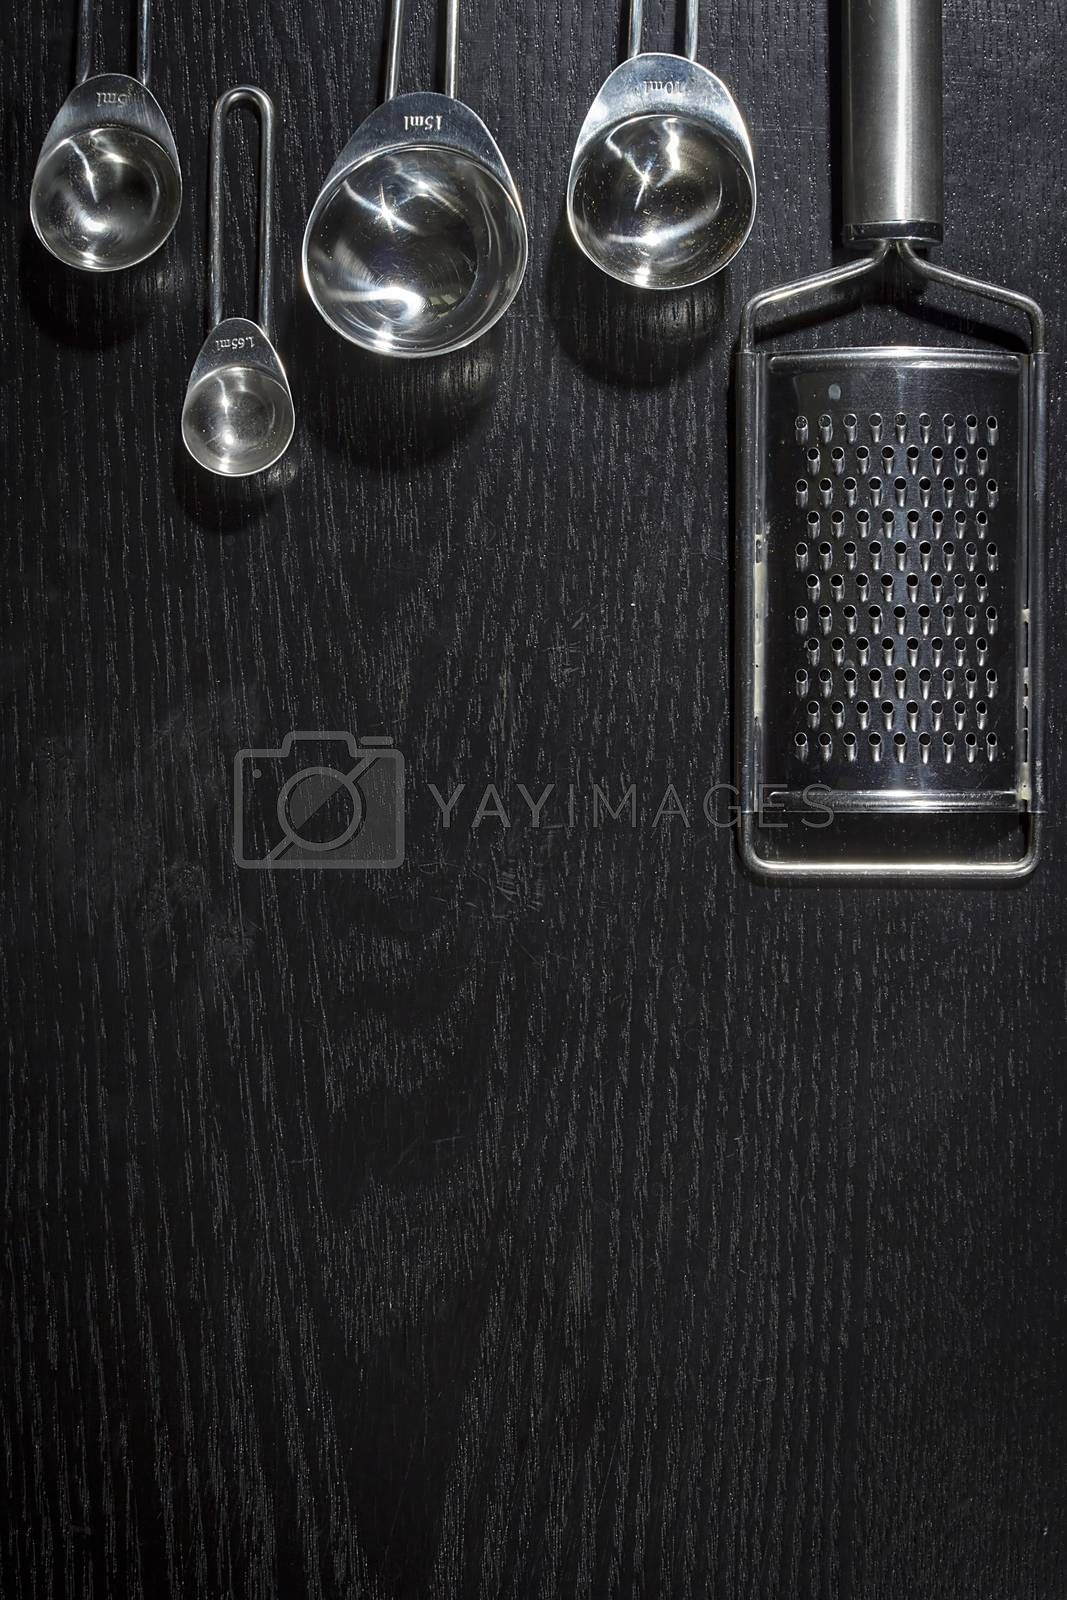 Metal measuring spoons and grater on black wooden background